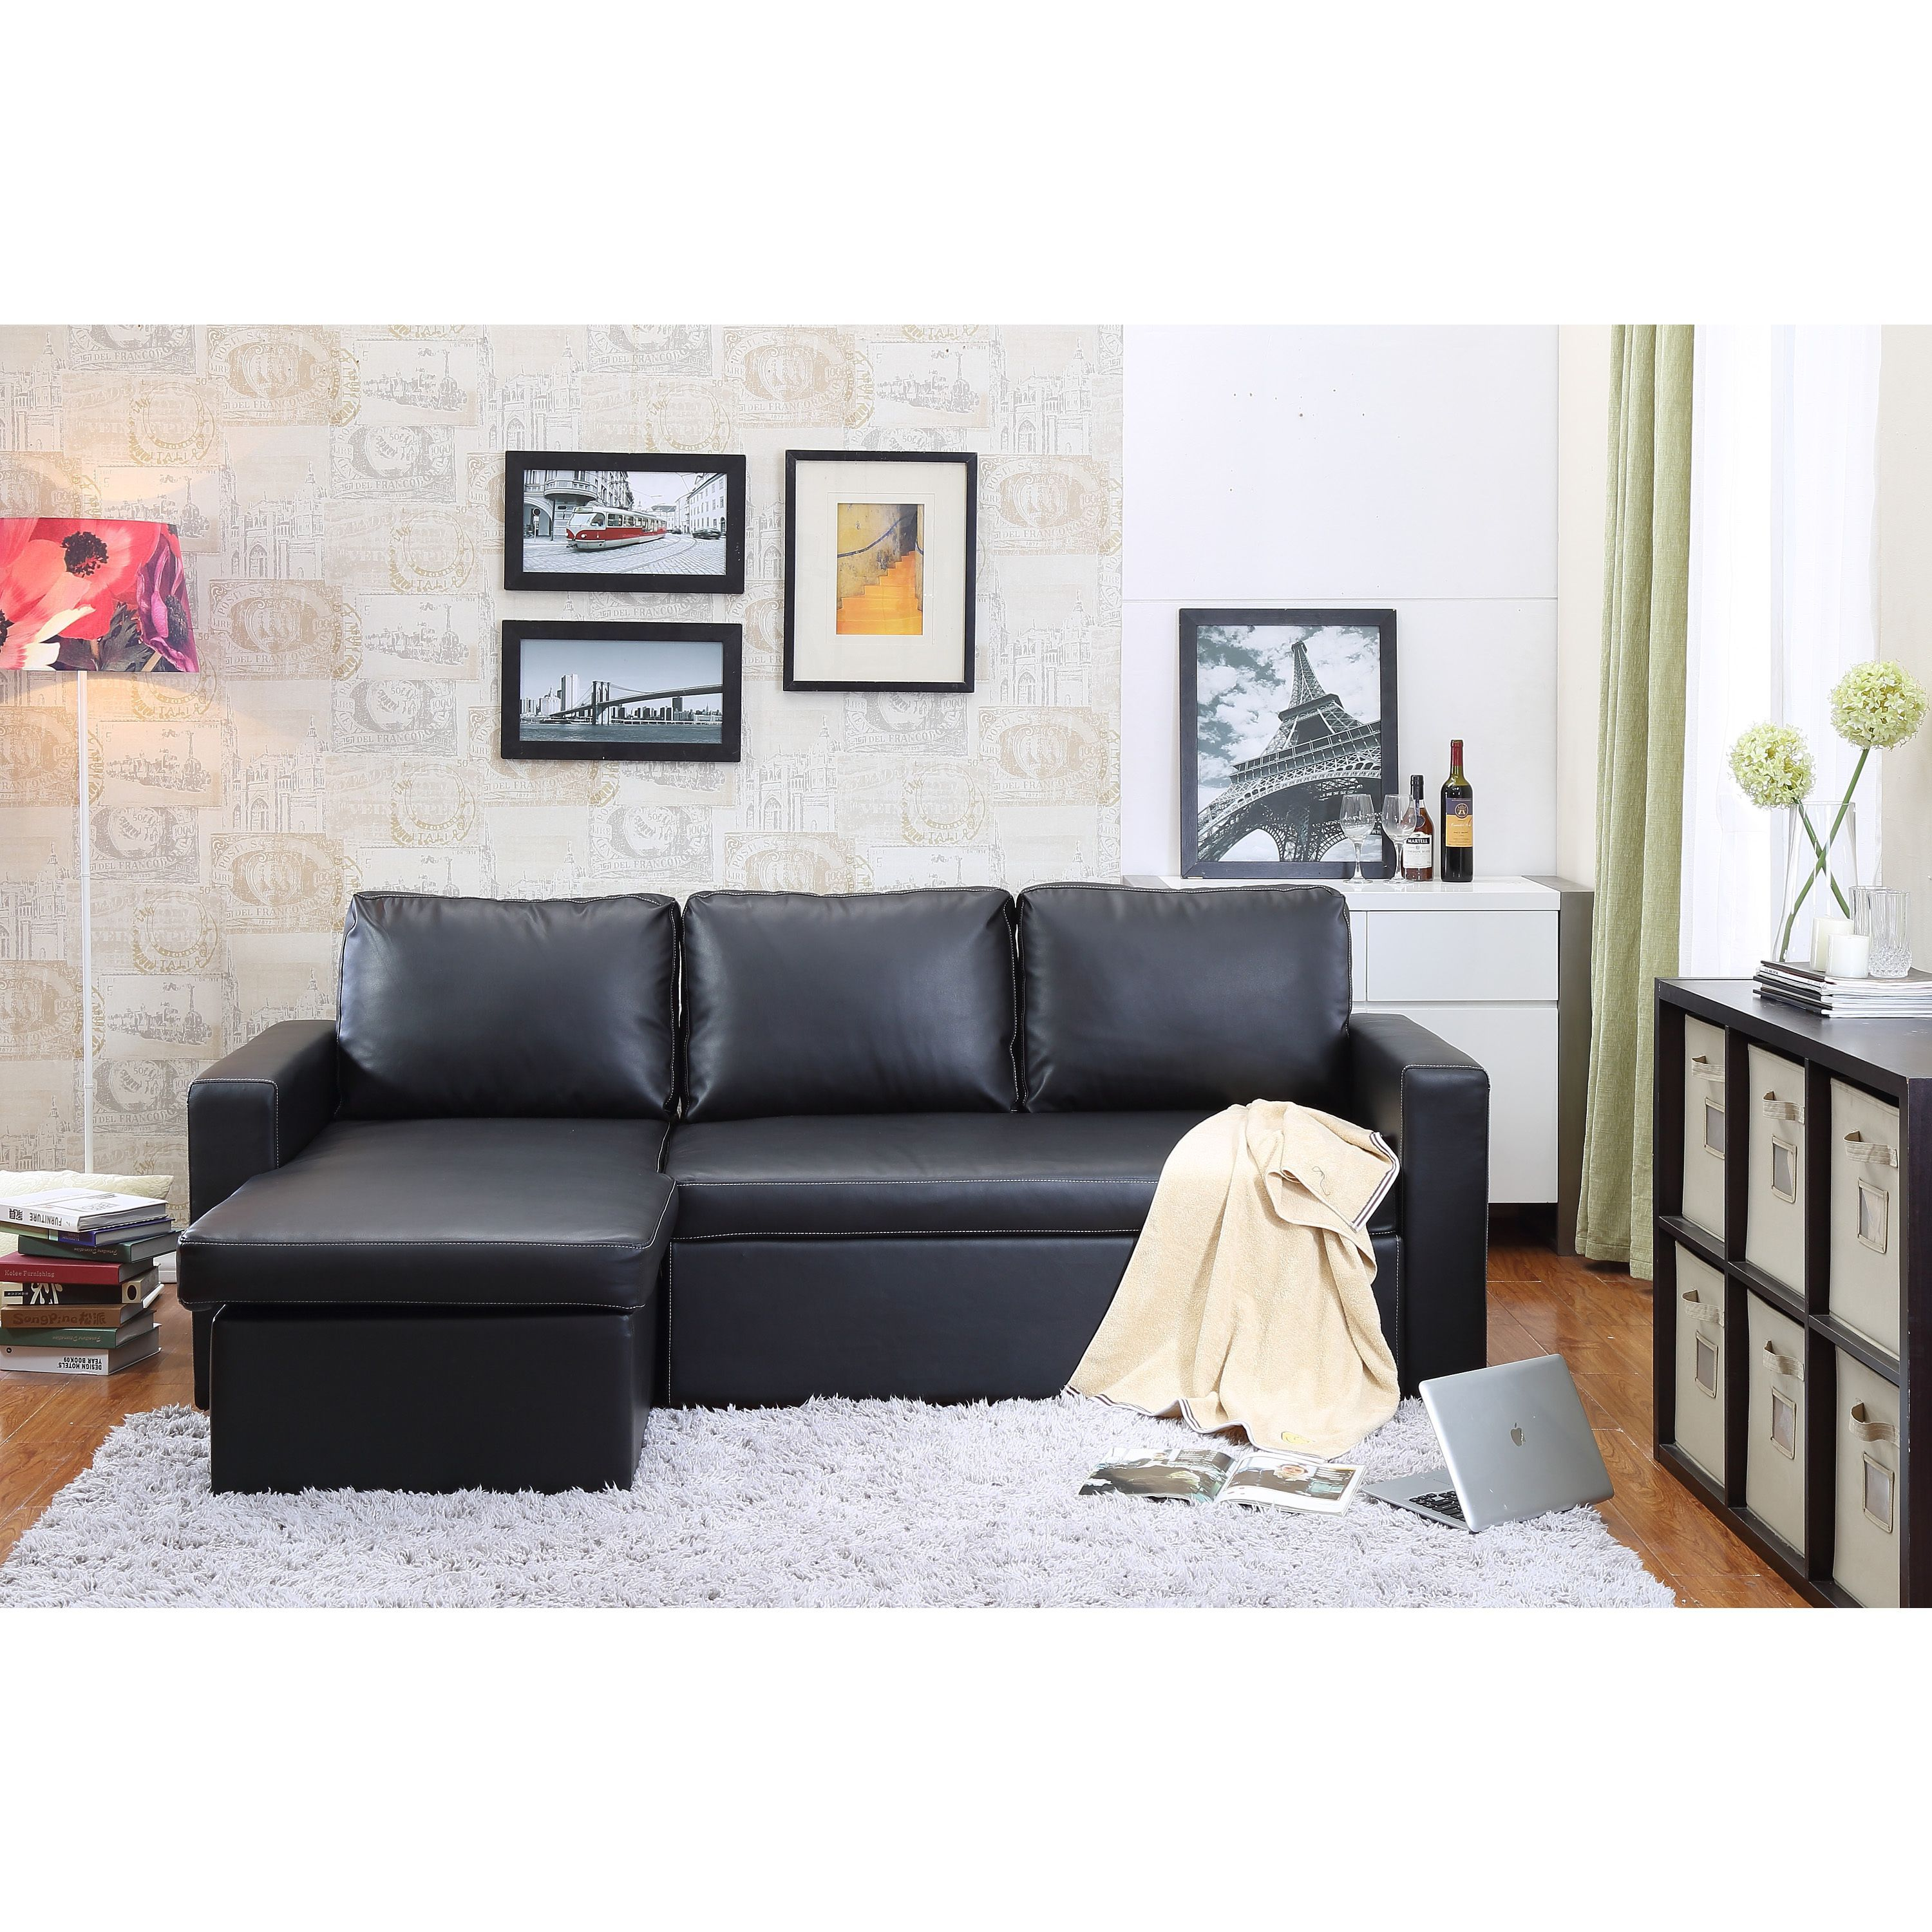 Russ160 The Hom 2 Piece Black Georgetown Bi Cast Leather Sectional Sofa Bed With Storage Pieces Faux